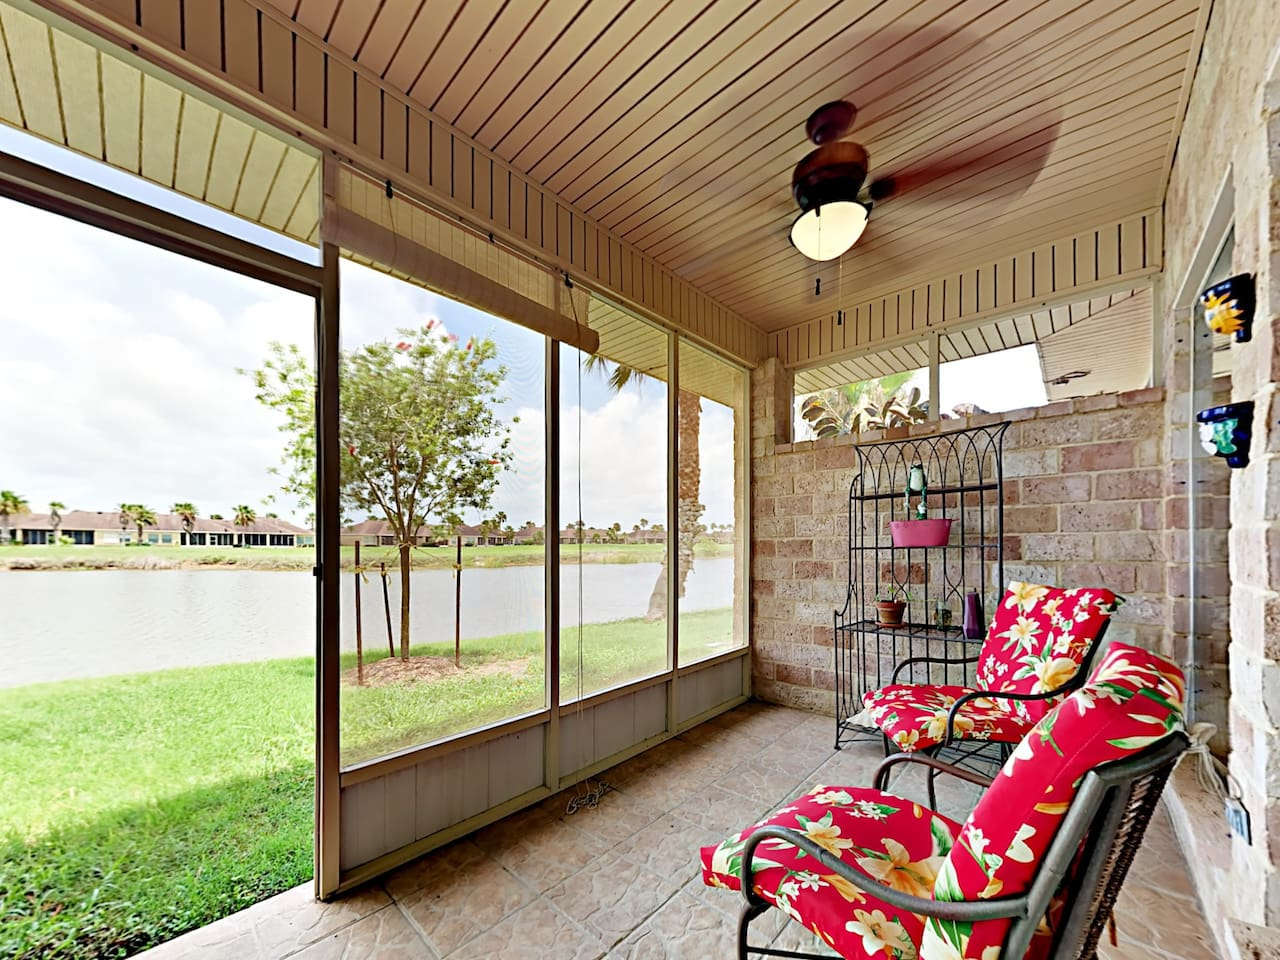 Lake views from the screened porch. This property is maintained and managed by TurnKey Vacation Rentals.